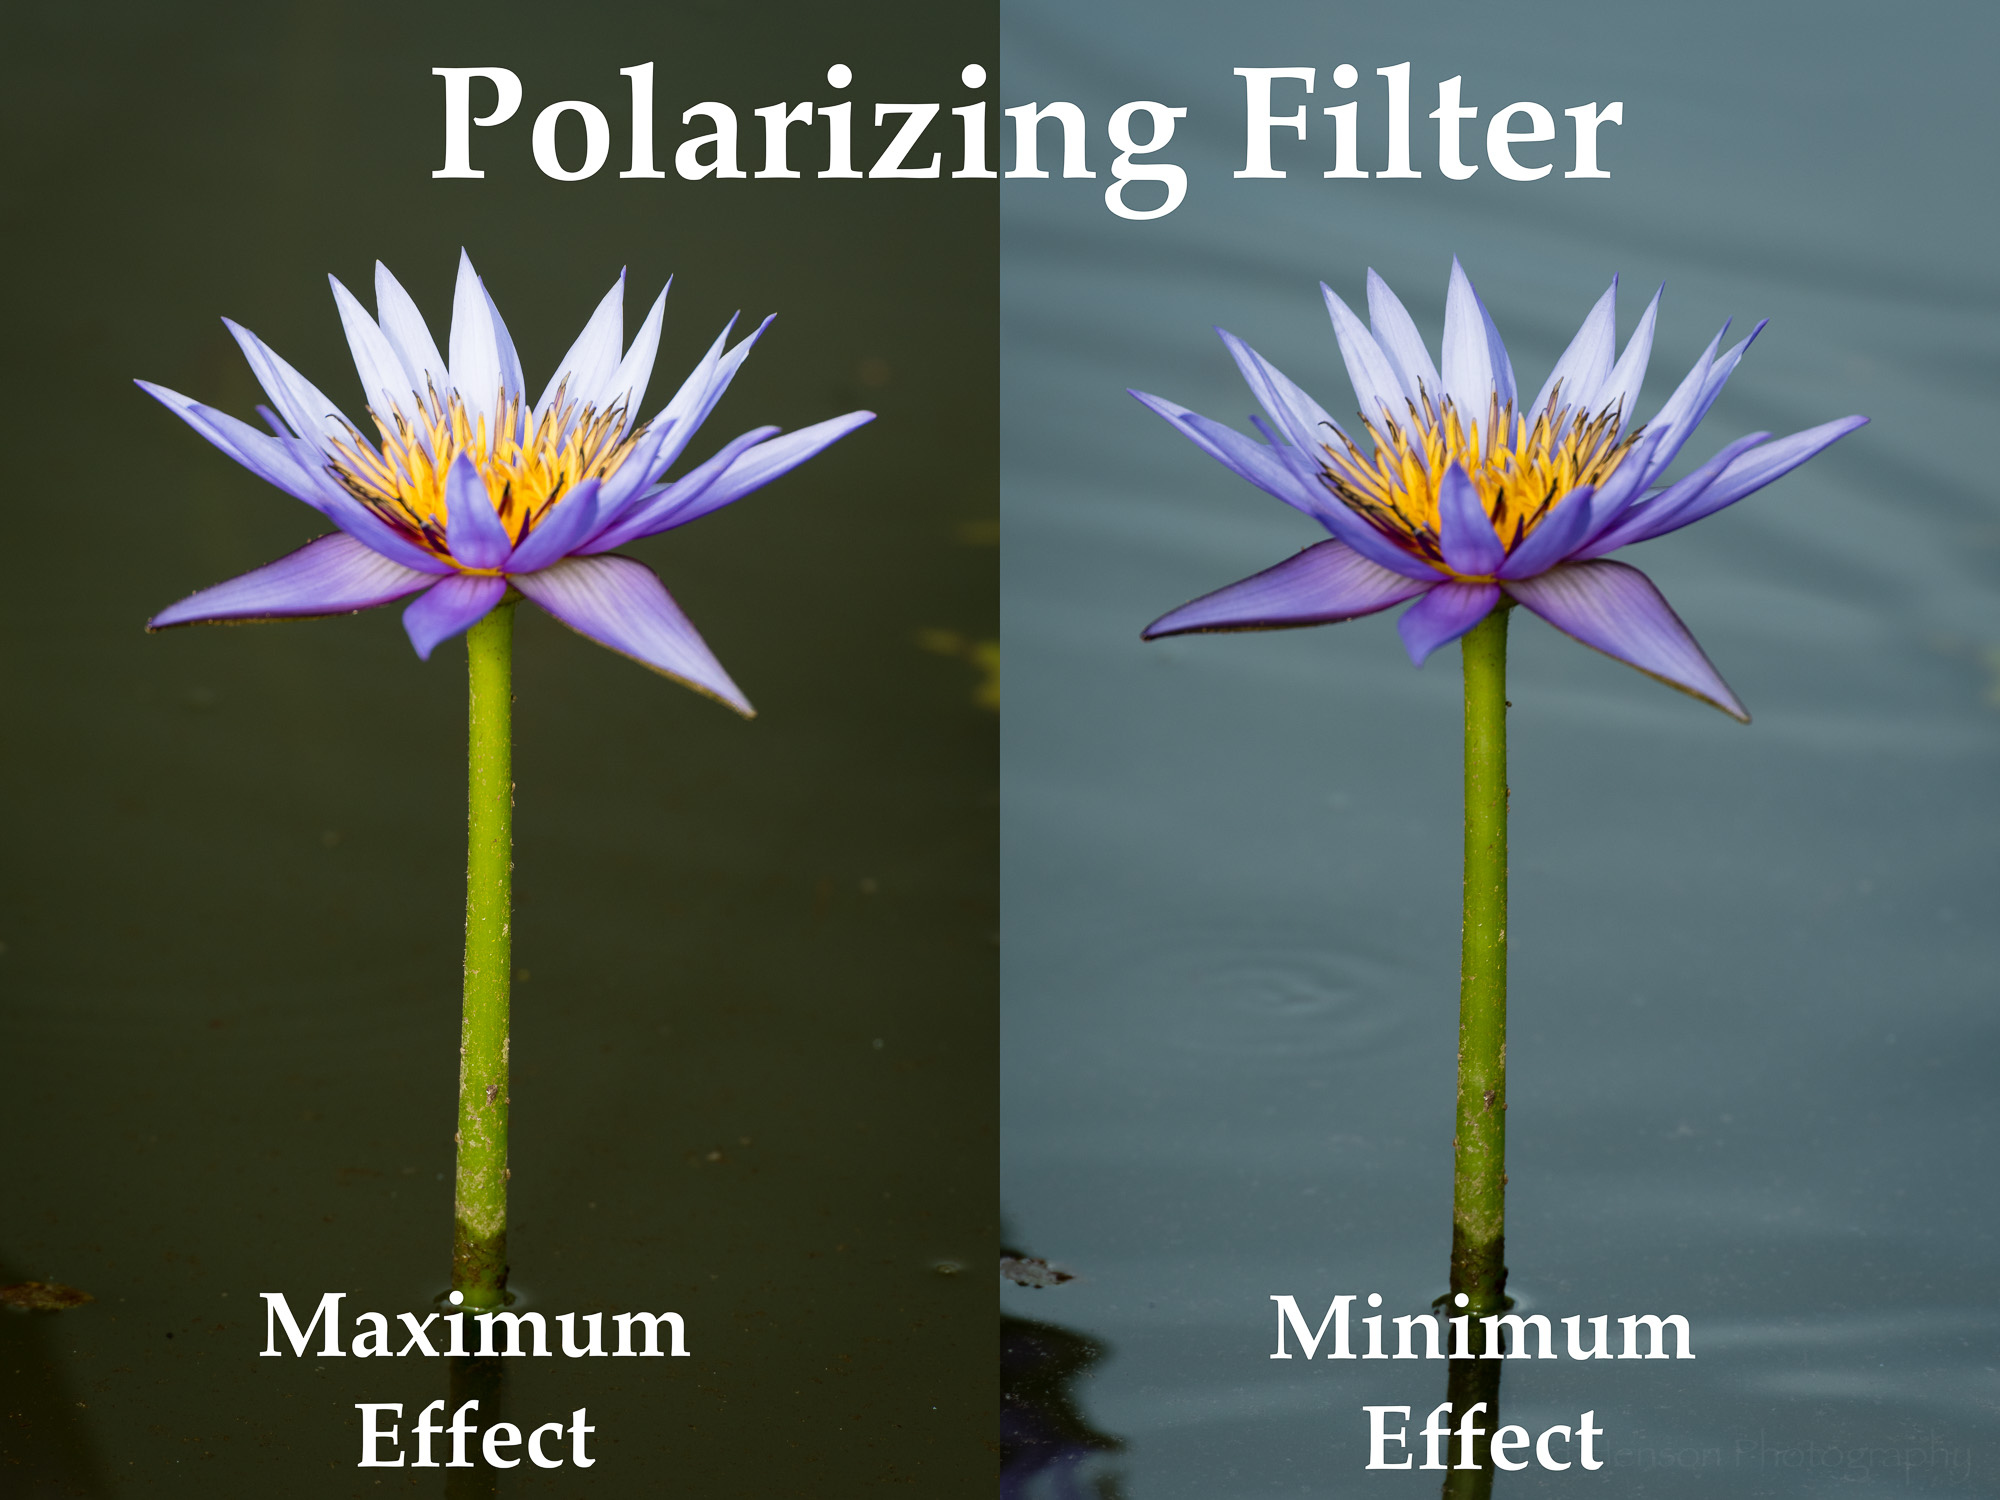 Example showing maximum and minimum effect using a polarizing filter with a purple water lily.